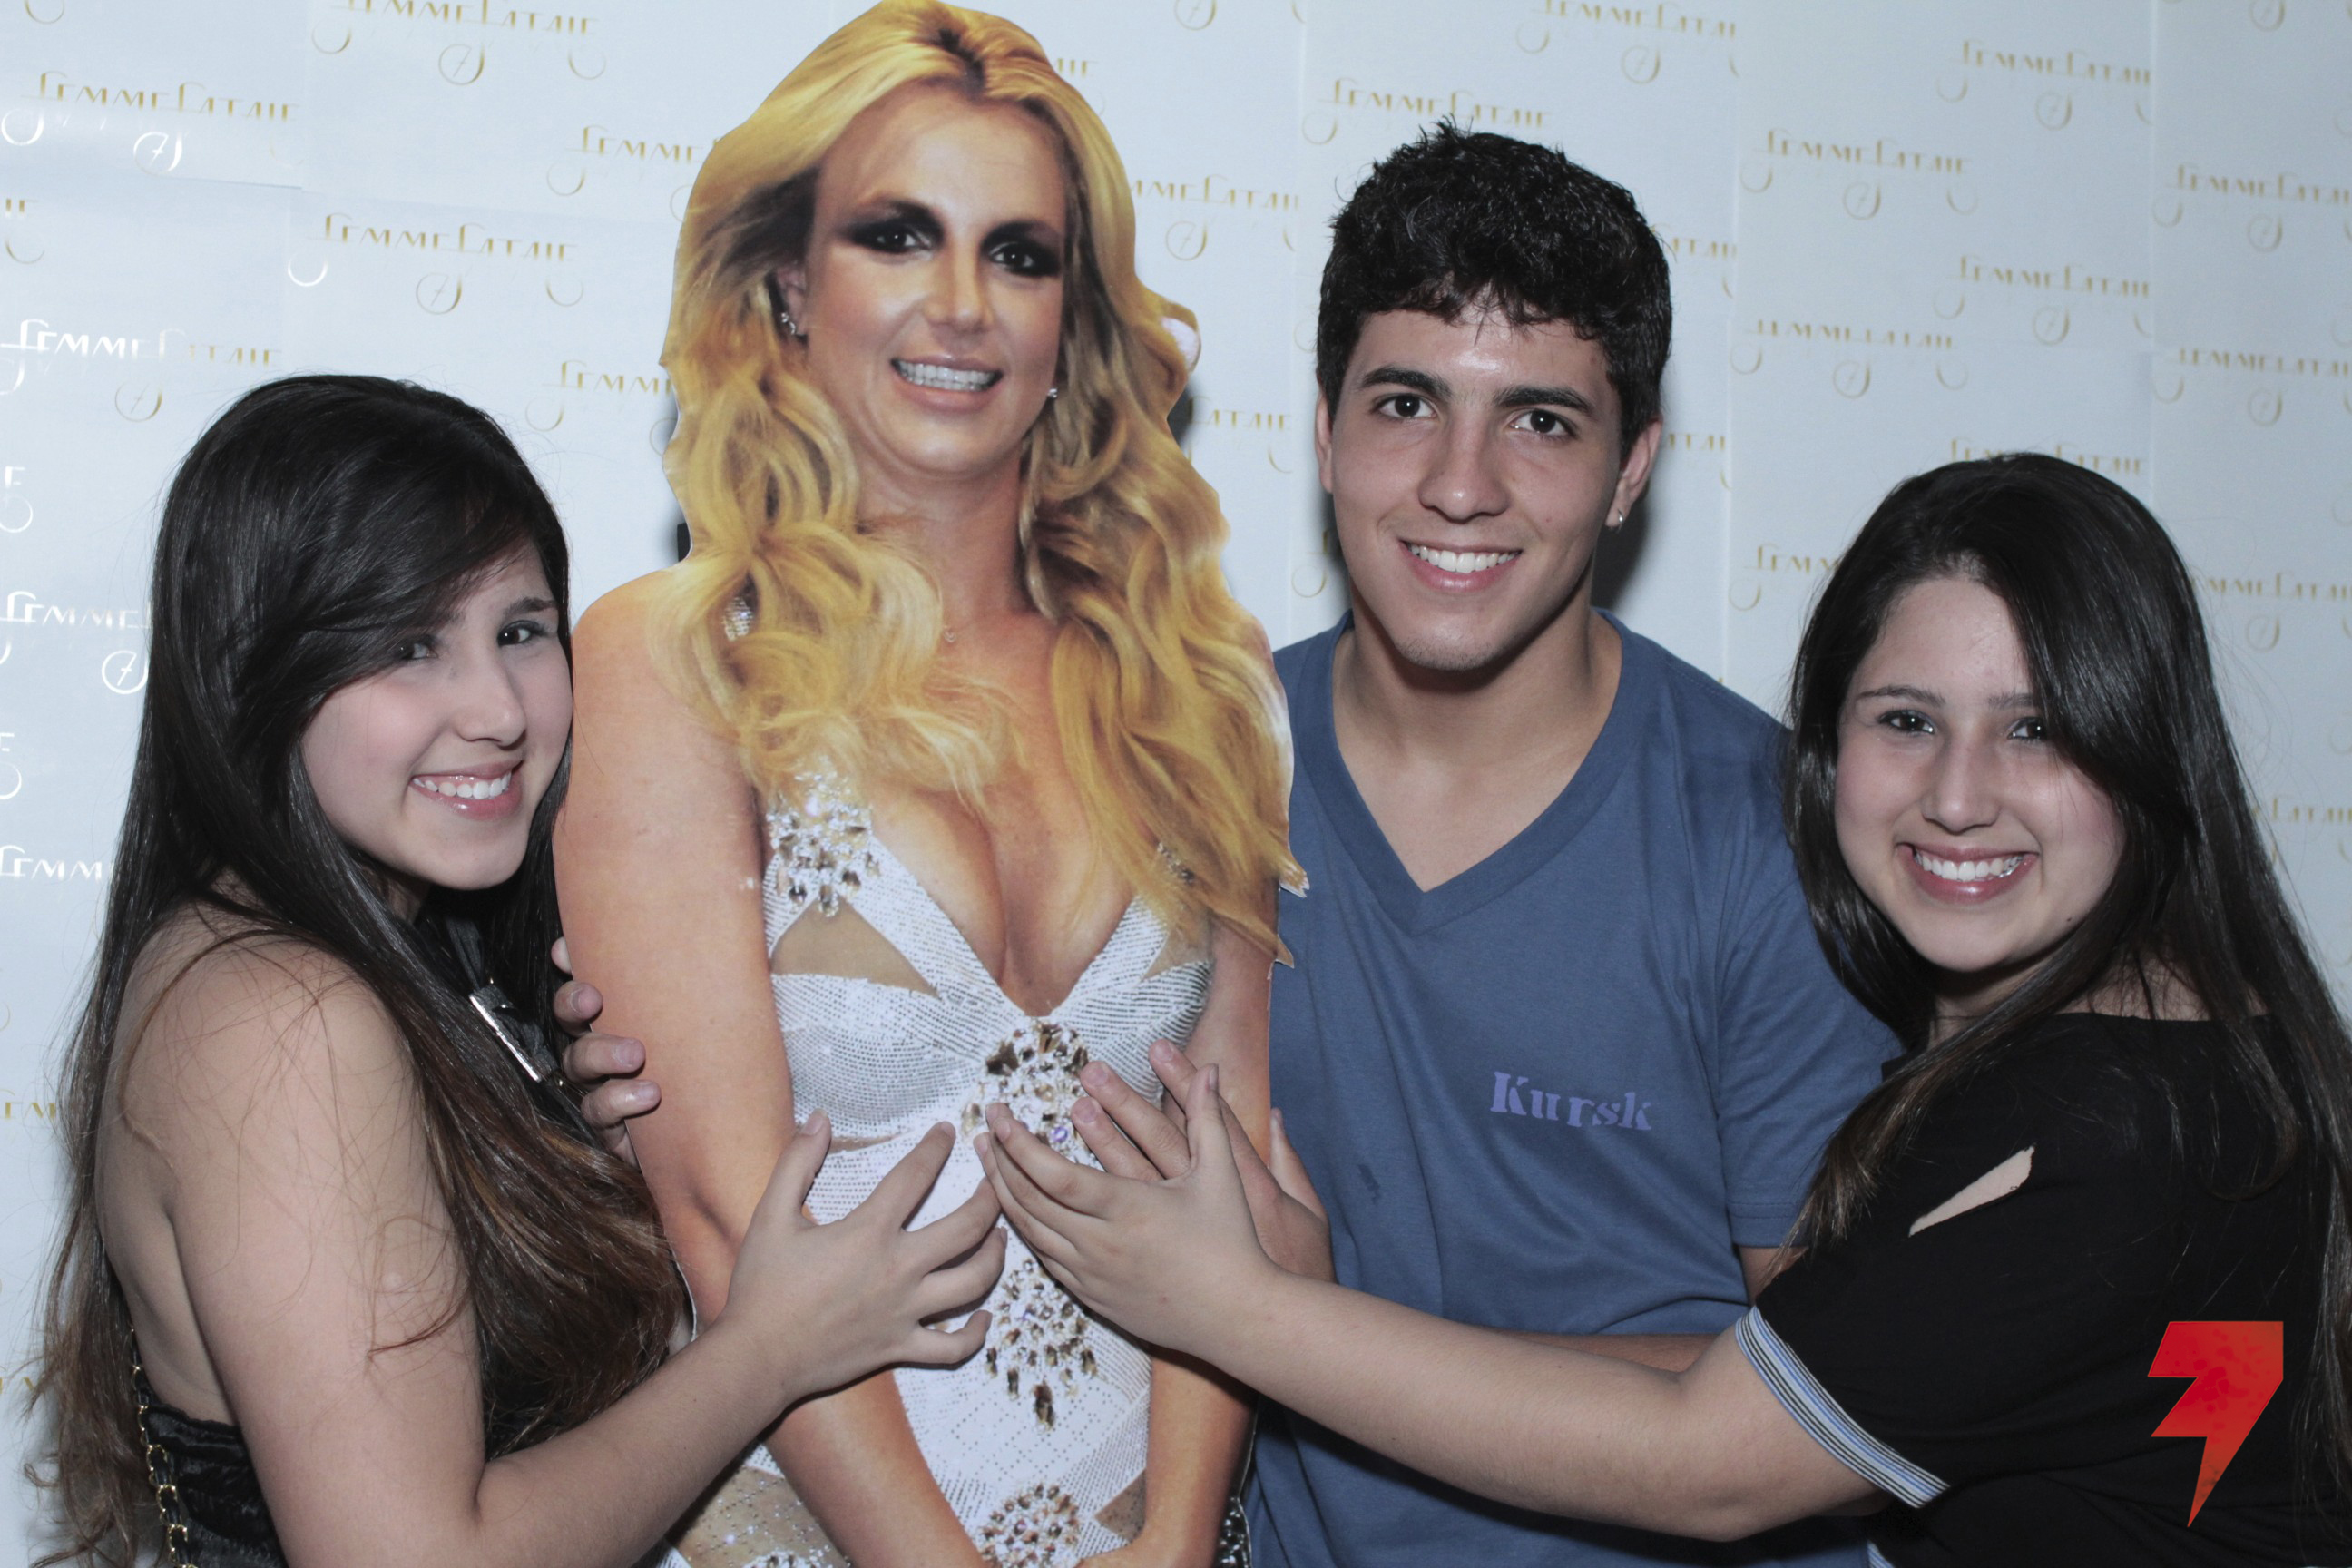 I thought this was a real meet and greet picture the britney 634148461011c5fcd2a0og m4hsunfo